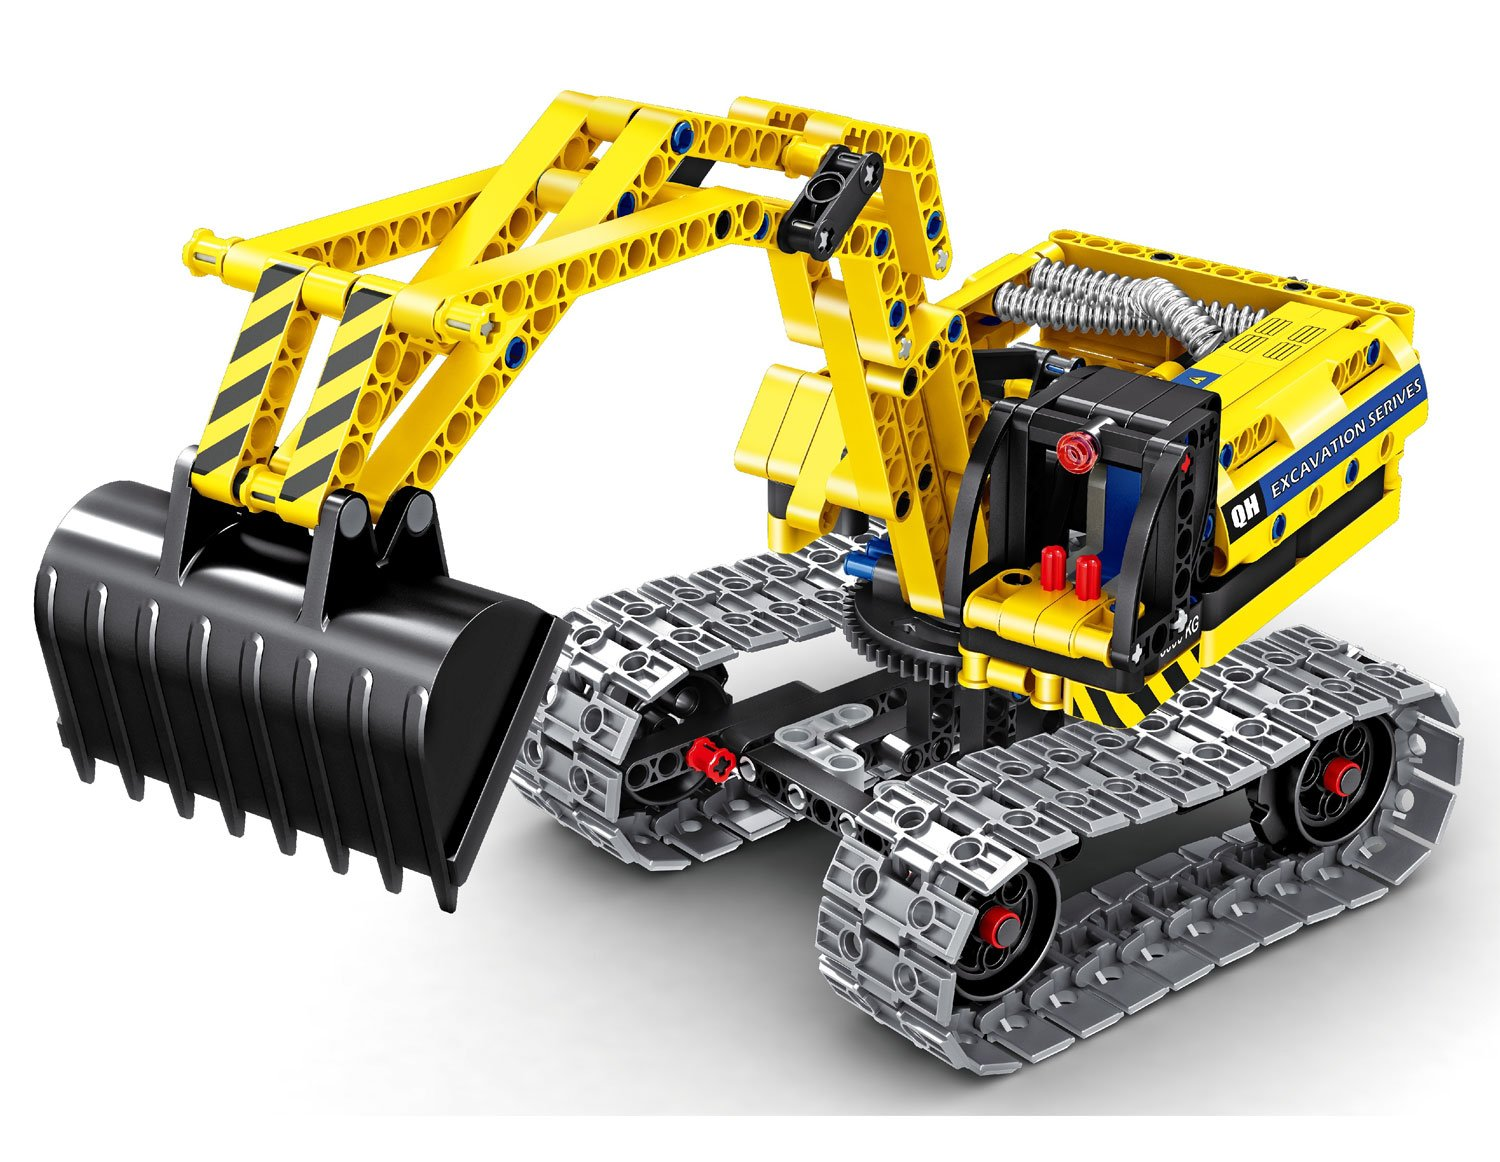 Bo Toys Building Bricks STEM Toy, 342 Pcs Excavator & Robot Construction Blocks, Build It Yourself Toys Review